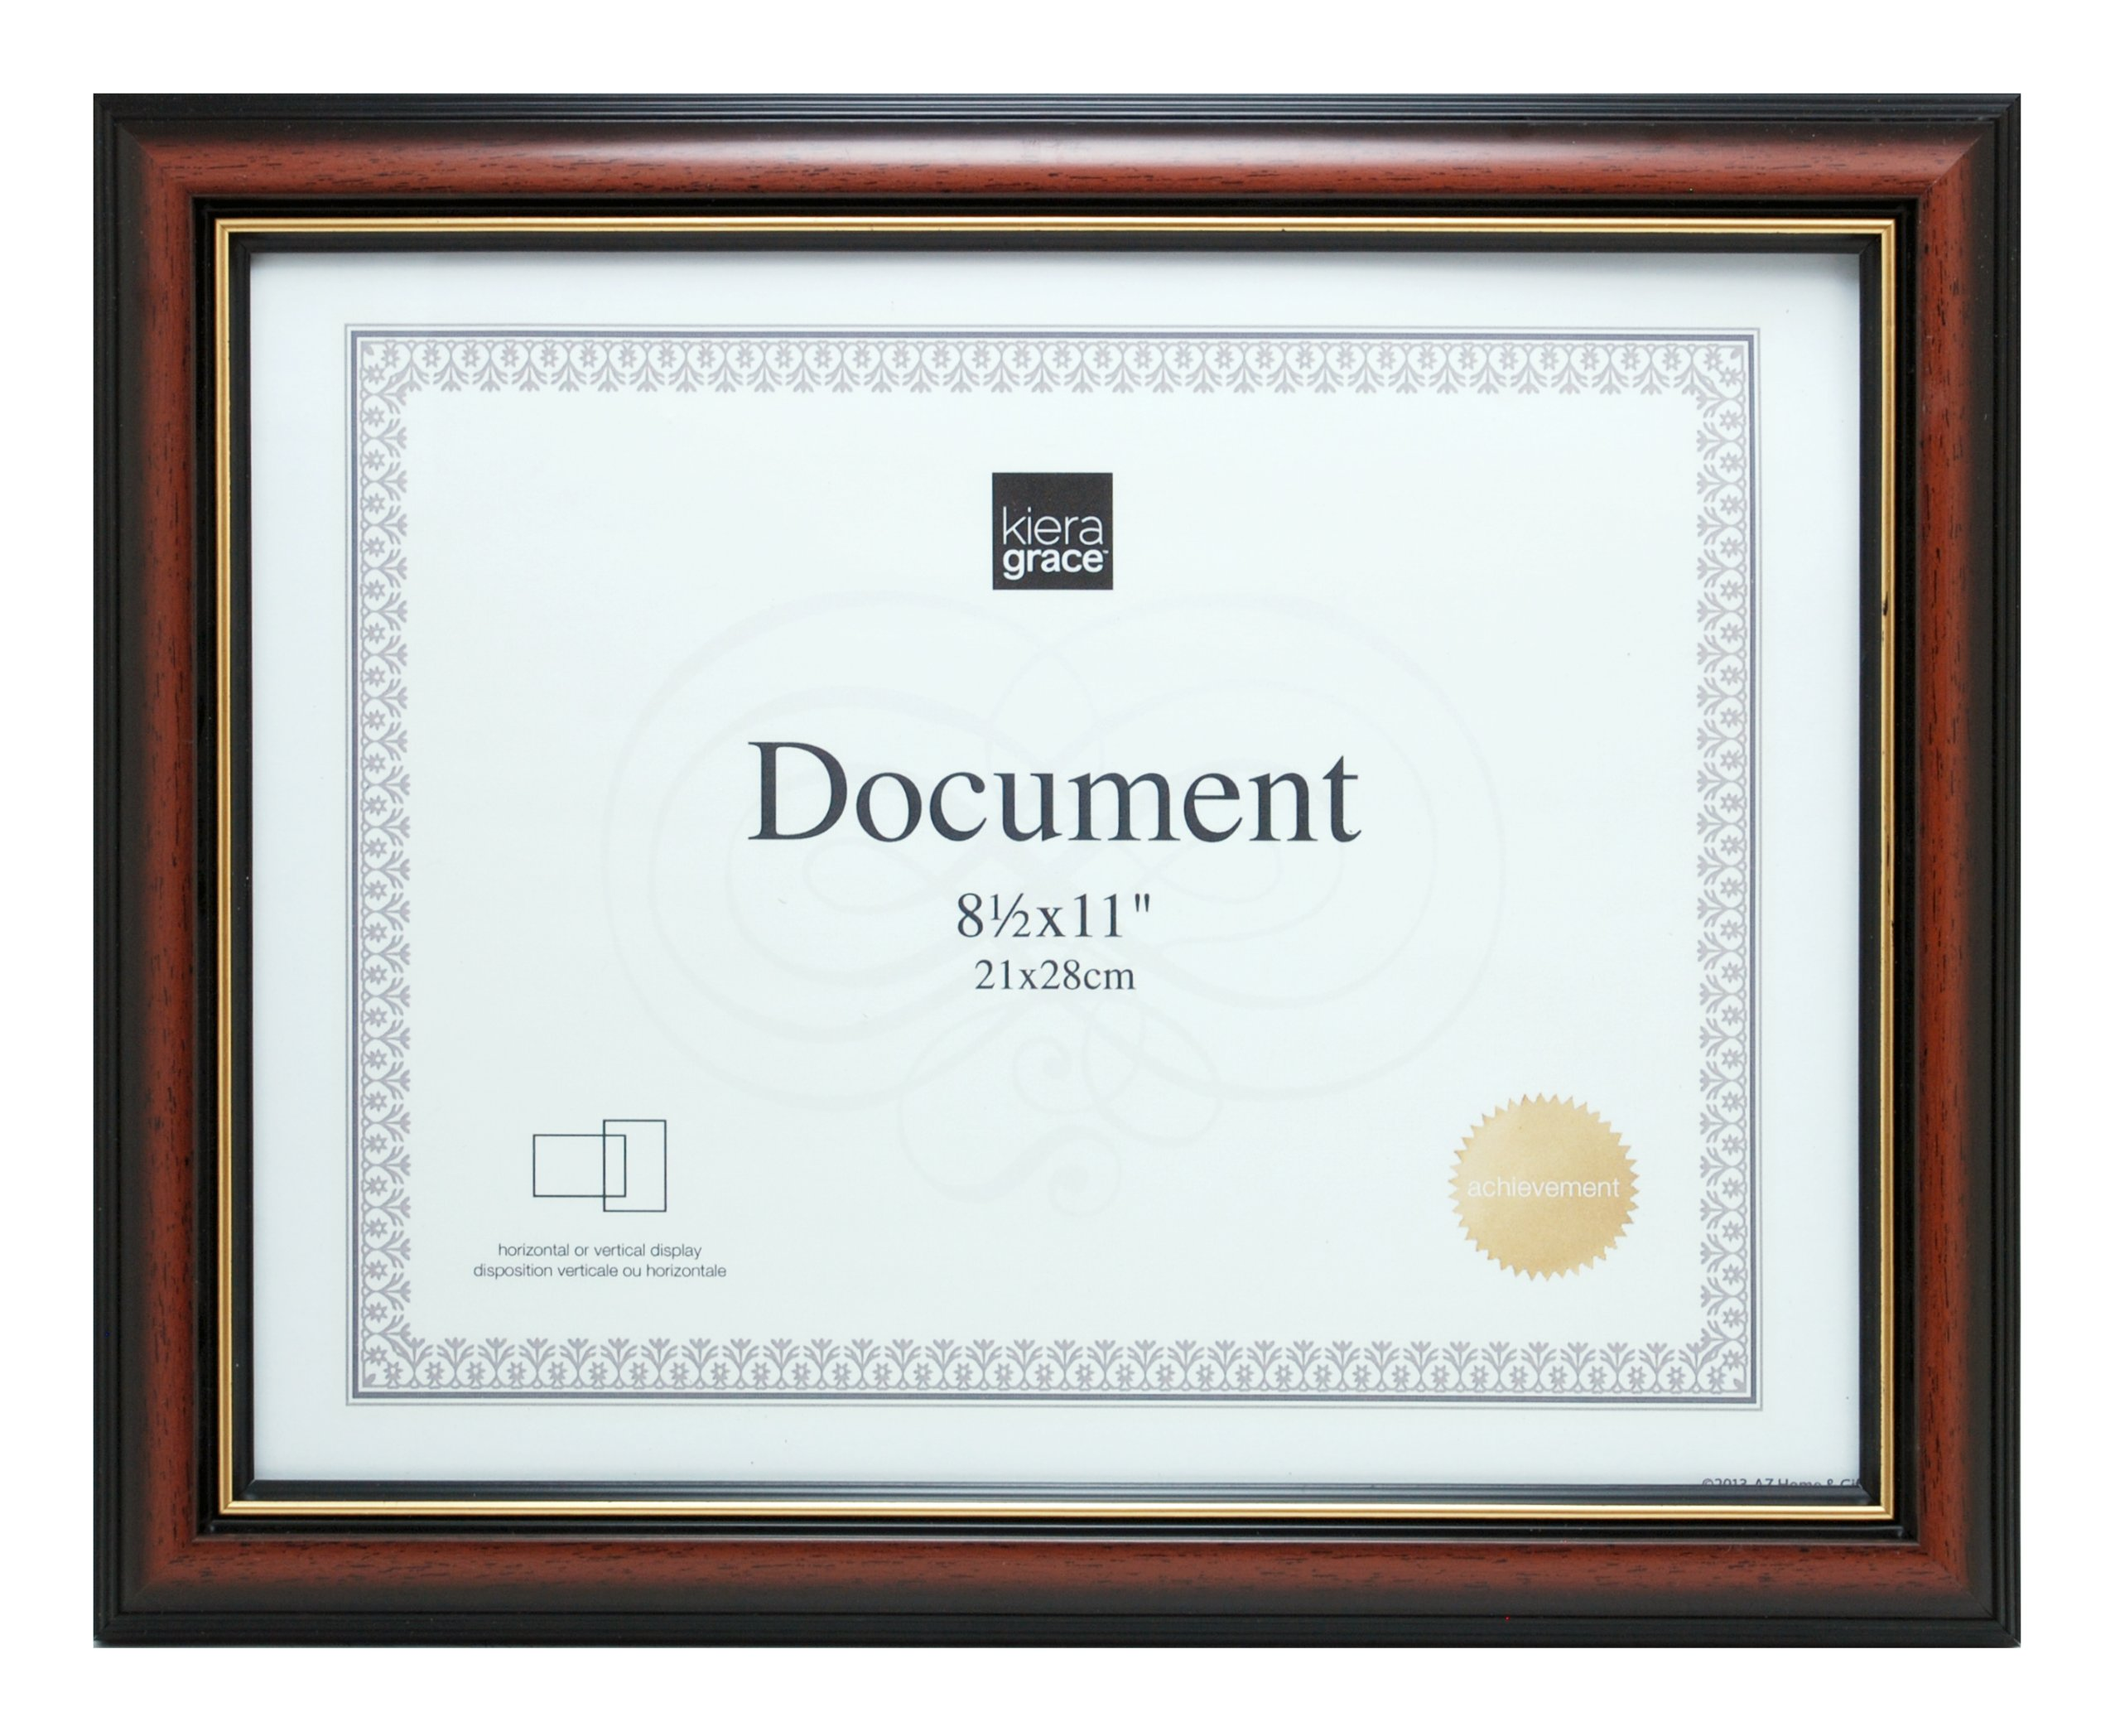 Kiera Grace Kylie Document Frame, 8.5 by 11-Inch Document, Brown with Gold Border